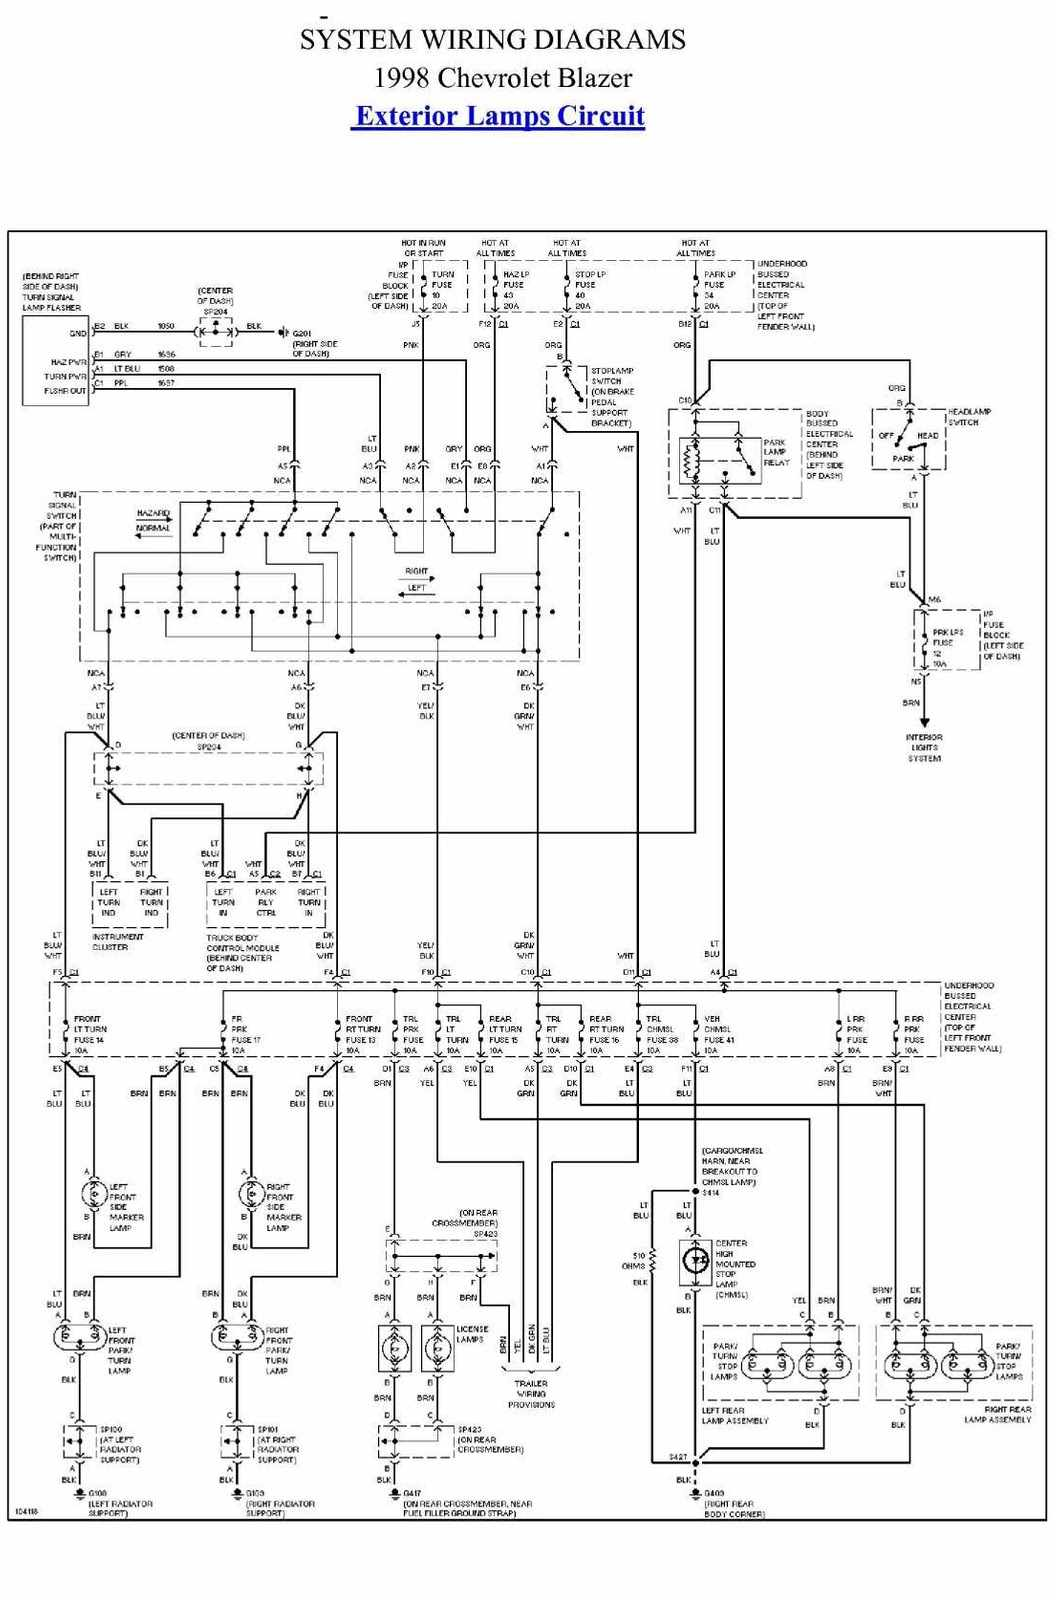 Wiring Connection Diagram A Junction Box Exterior Lamp Circuit Of 1998 Chevrolet Blazer